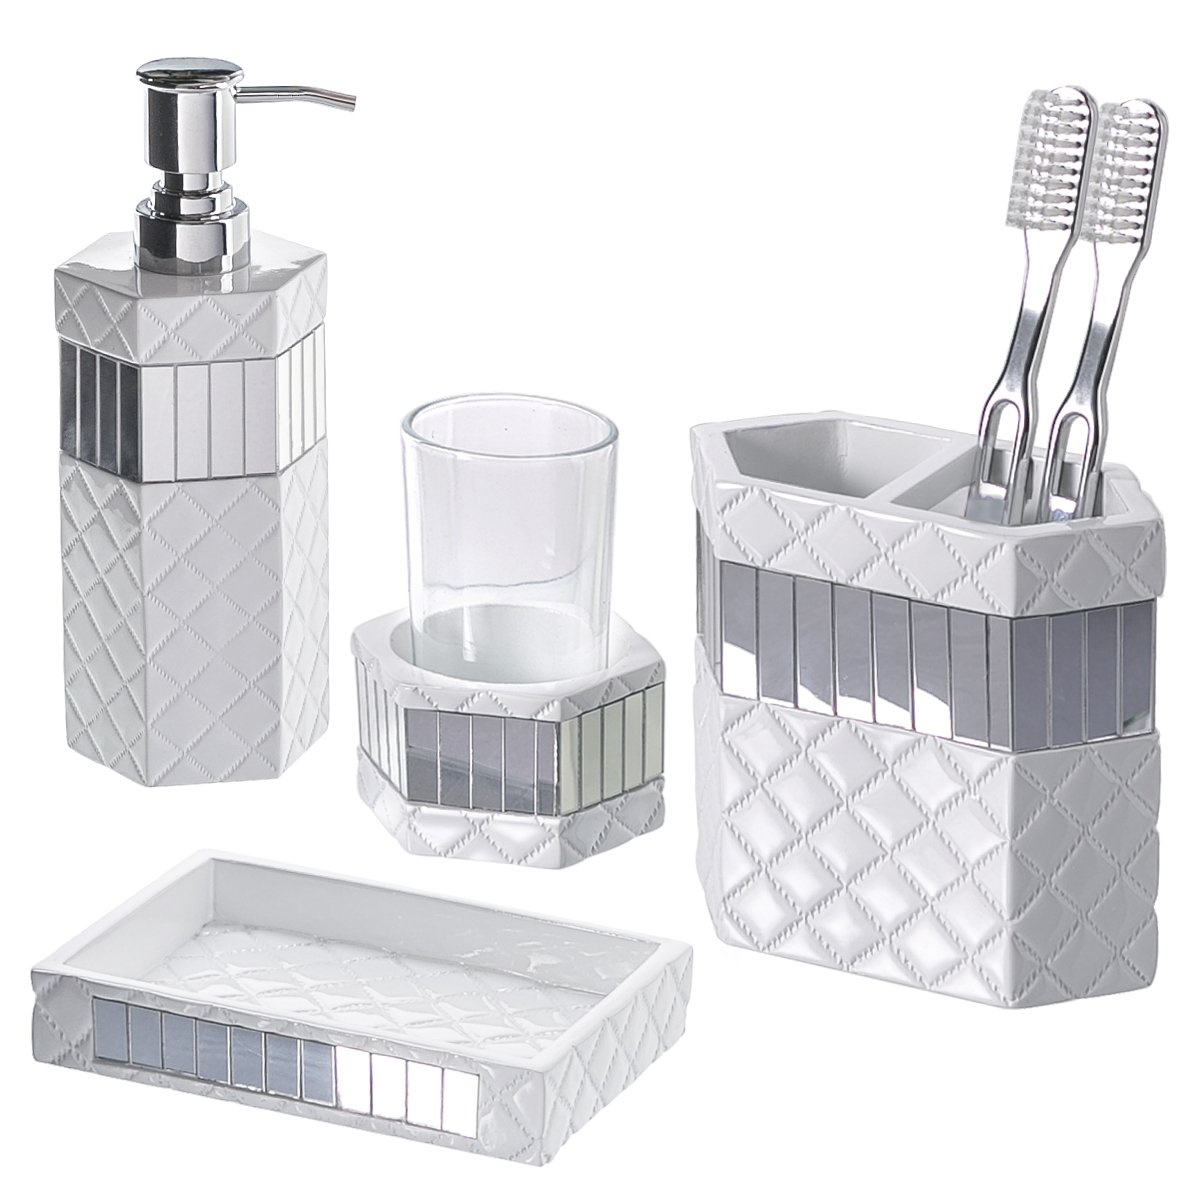 ... Mirror Bathroom Accessories Set, 4 Piece, Includes Soap Dispenser,  Toothbrush Holder, Tumbler U0026 Soap Dish, Gift Package, Finished In White And  Silver ...